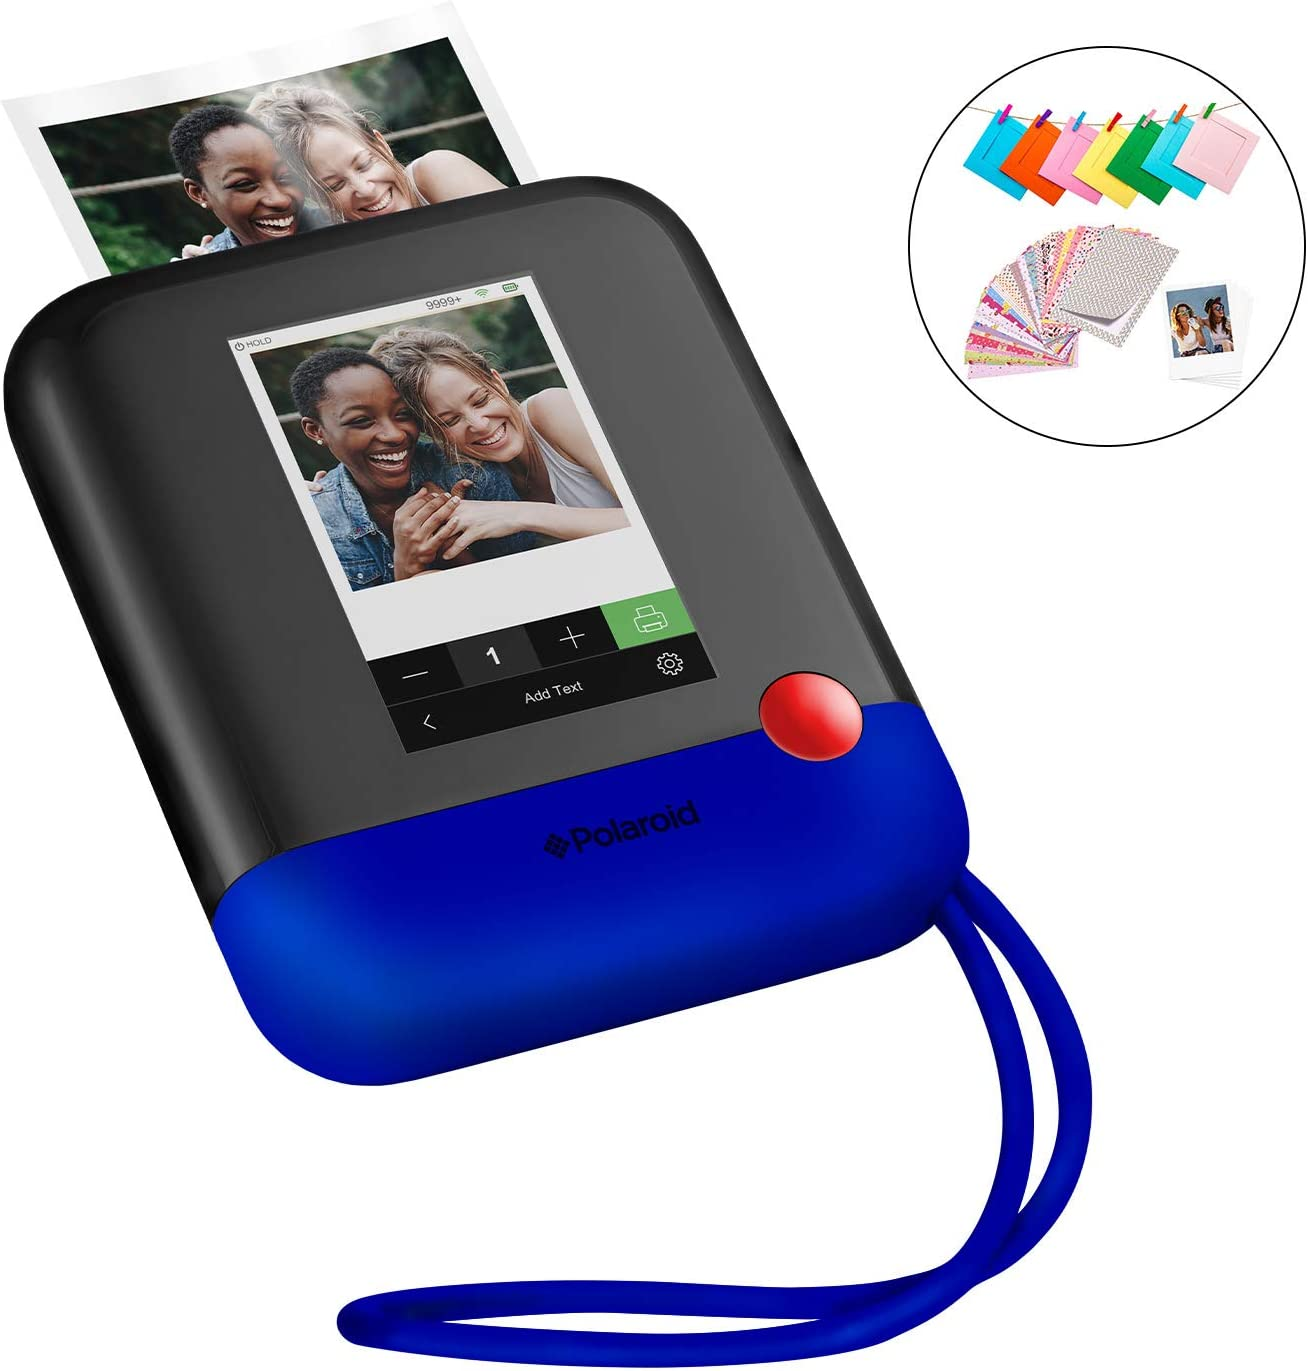 Polaroid Pop 2.0 2 in 1 Wireless Portable Instant 3x4 Photo Printer & Digital 20MP Camera with Touchscreen Display, Built-in Wi-Fi, 1080p HD Video (Blue) Prints From your Smartphone.